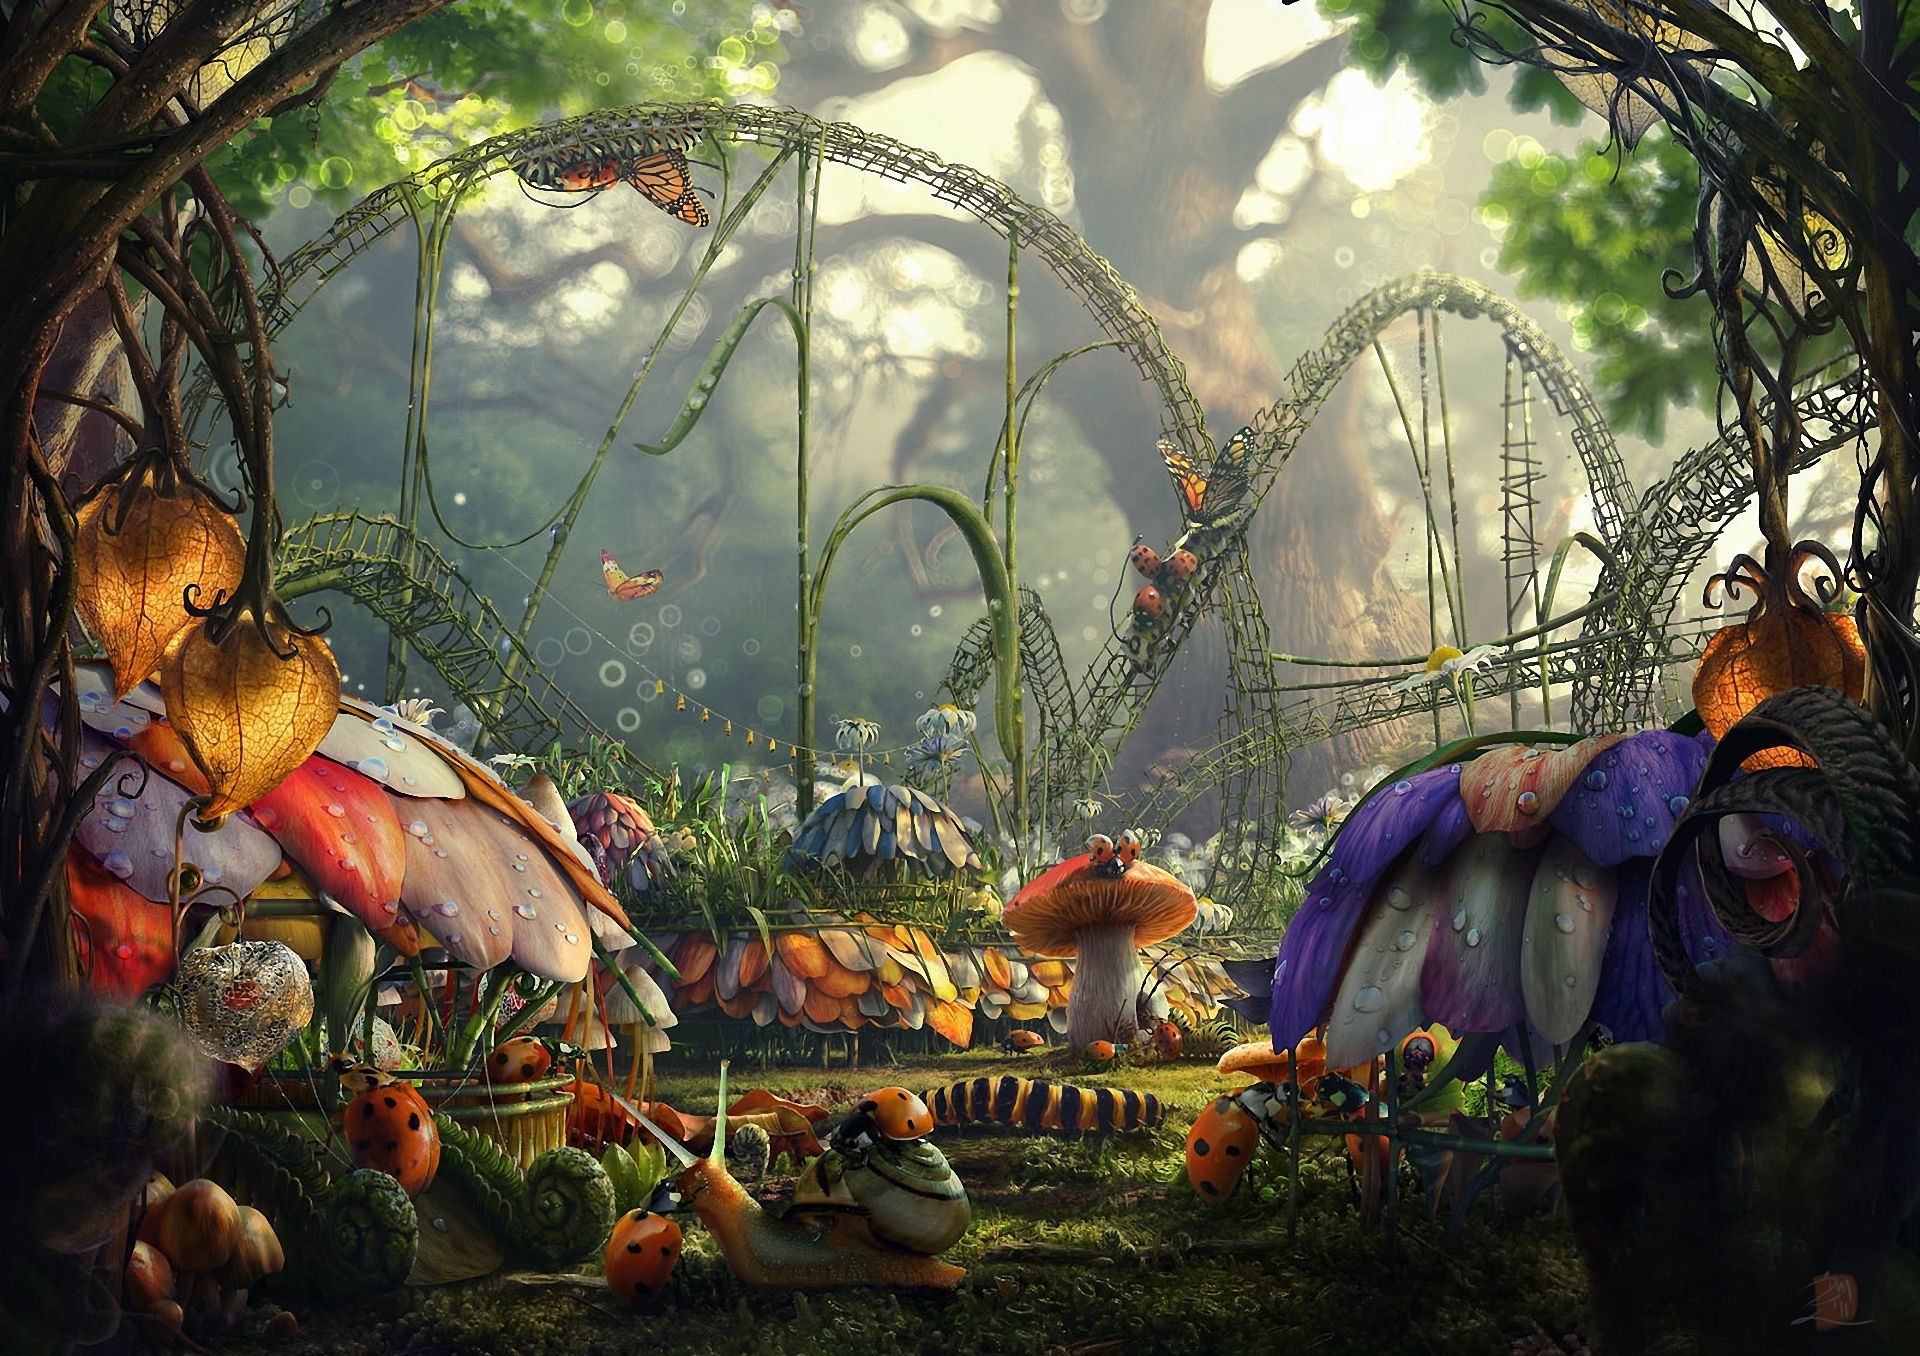 Amazing Fairytale Pictures & Backgrounds